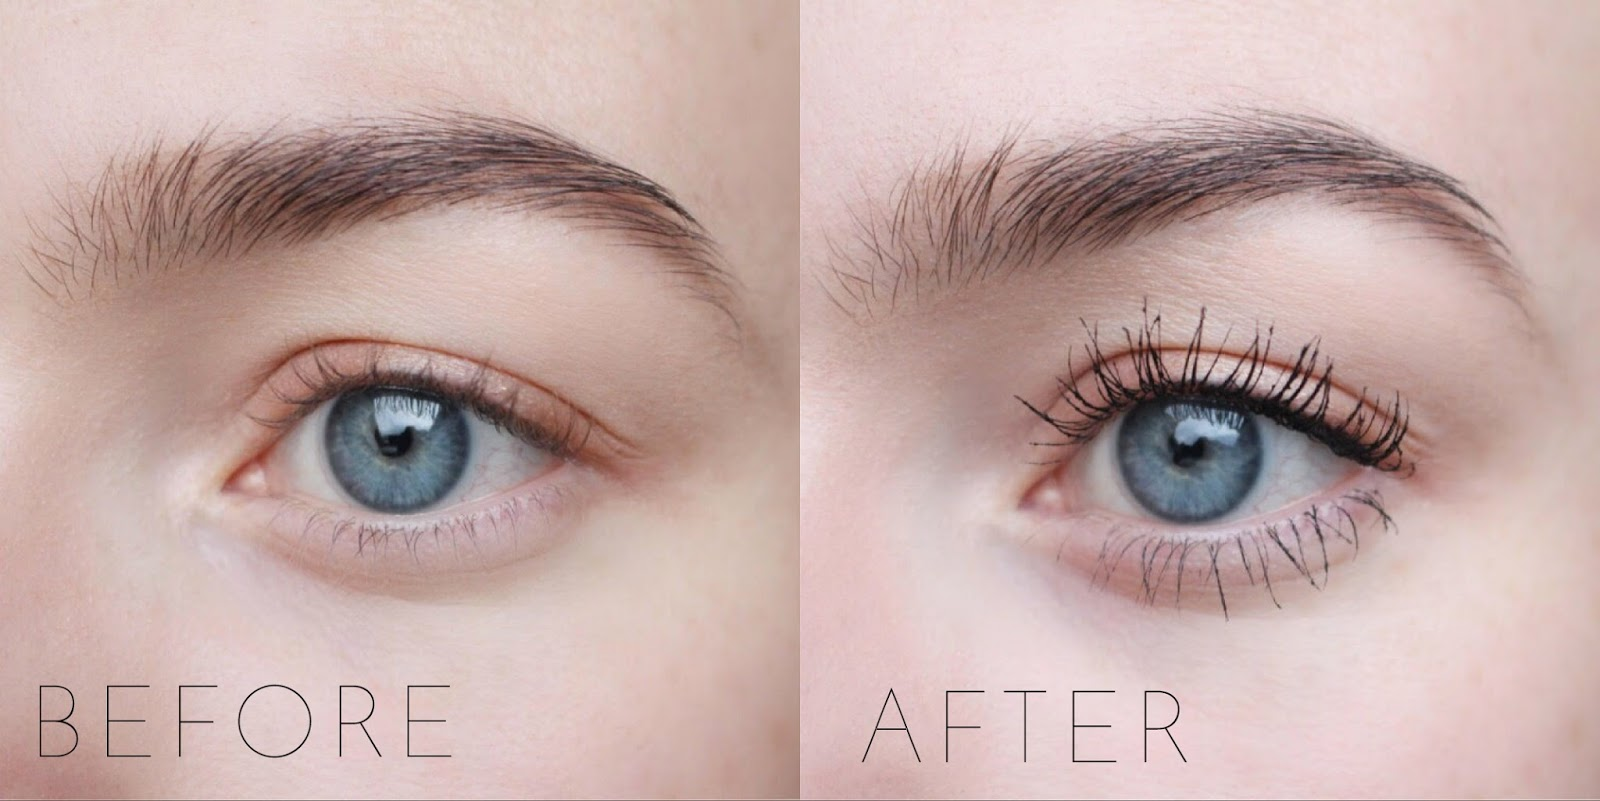 50e02a9a4b2 The mascara retails for £19.50, so definitely on the more expensive side. I  always look for a mascara that can offer me volume and length without  loosing ...